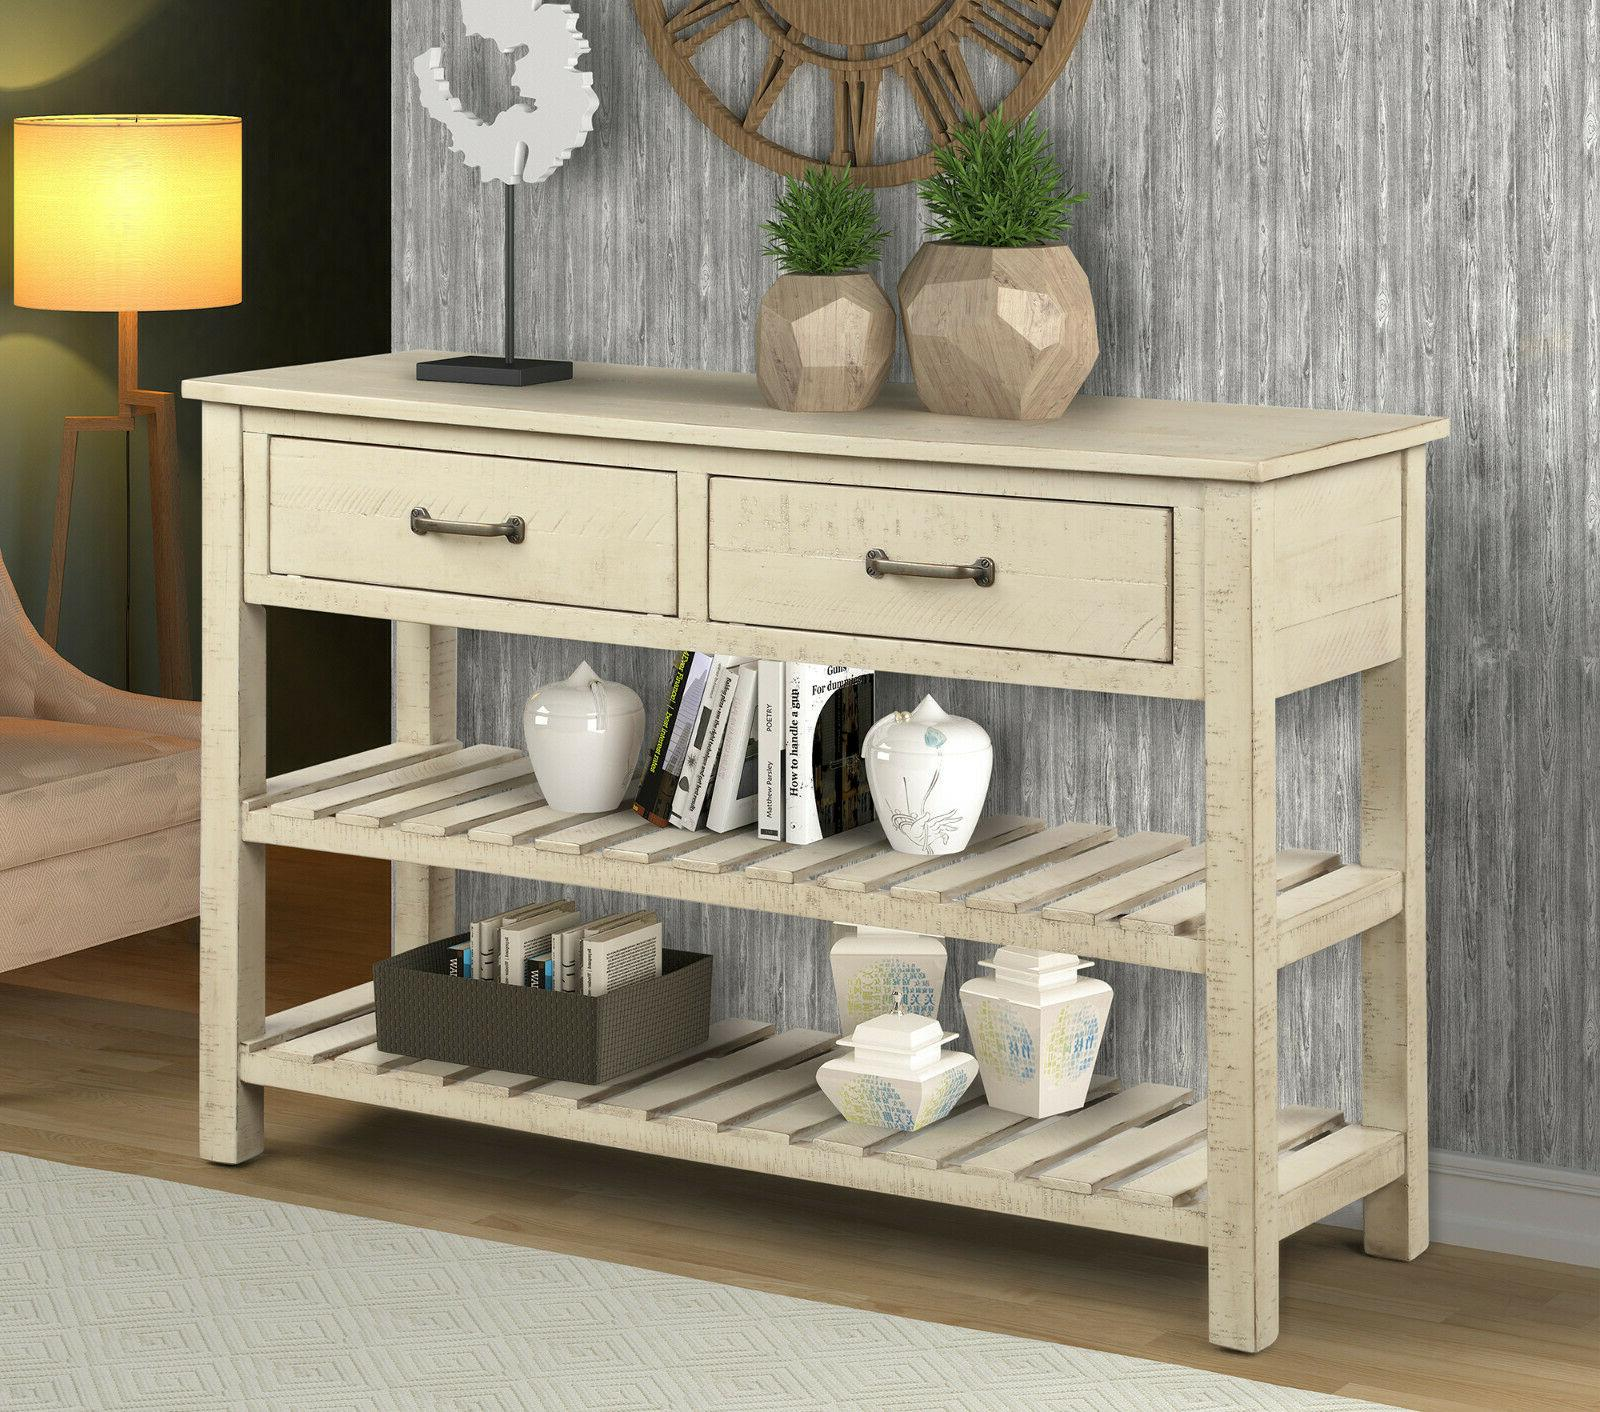 Retro Console Table Entryway with and Shelf Living US